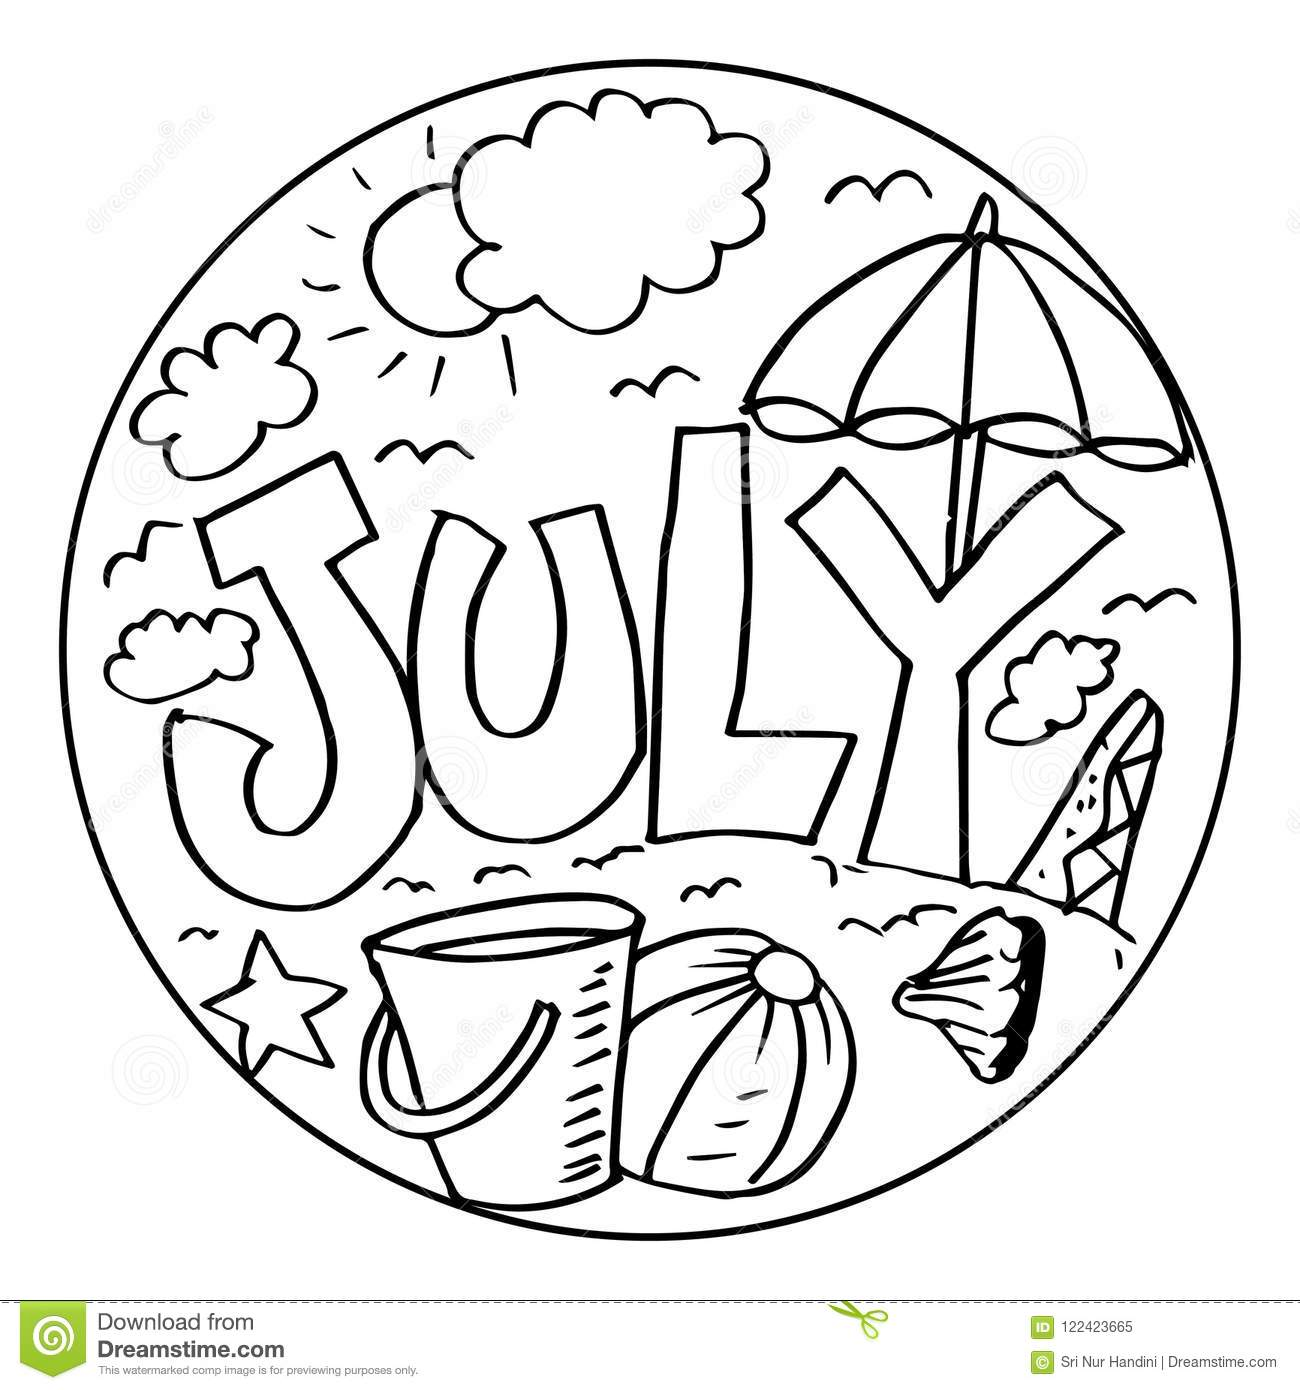 coloring pages for kids july happy july 4 coloring pages happy independence day pages for coloring july kids